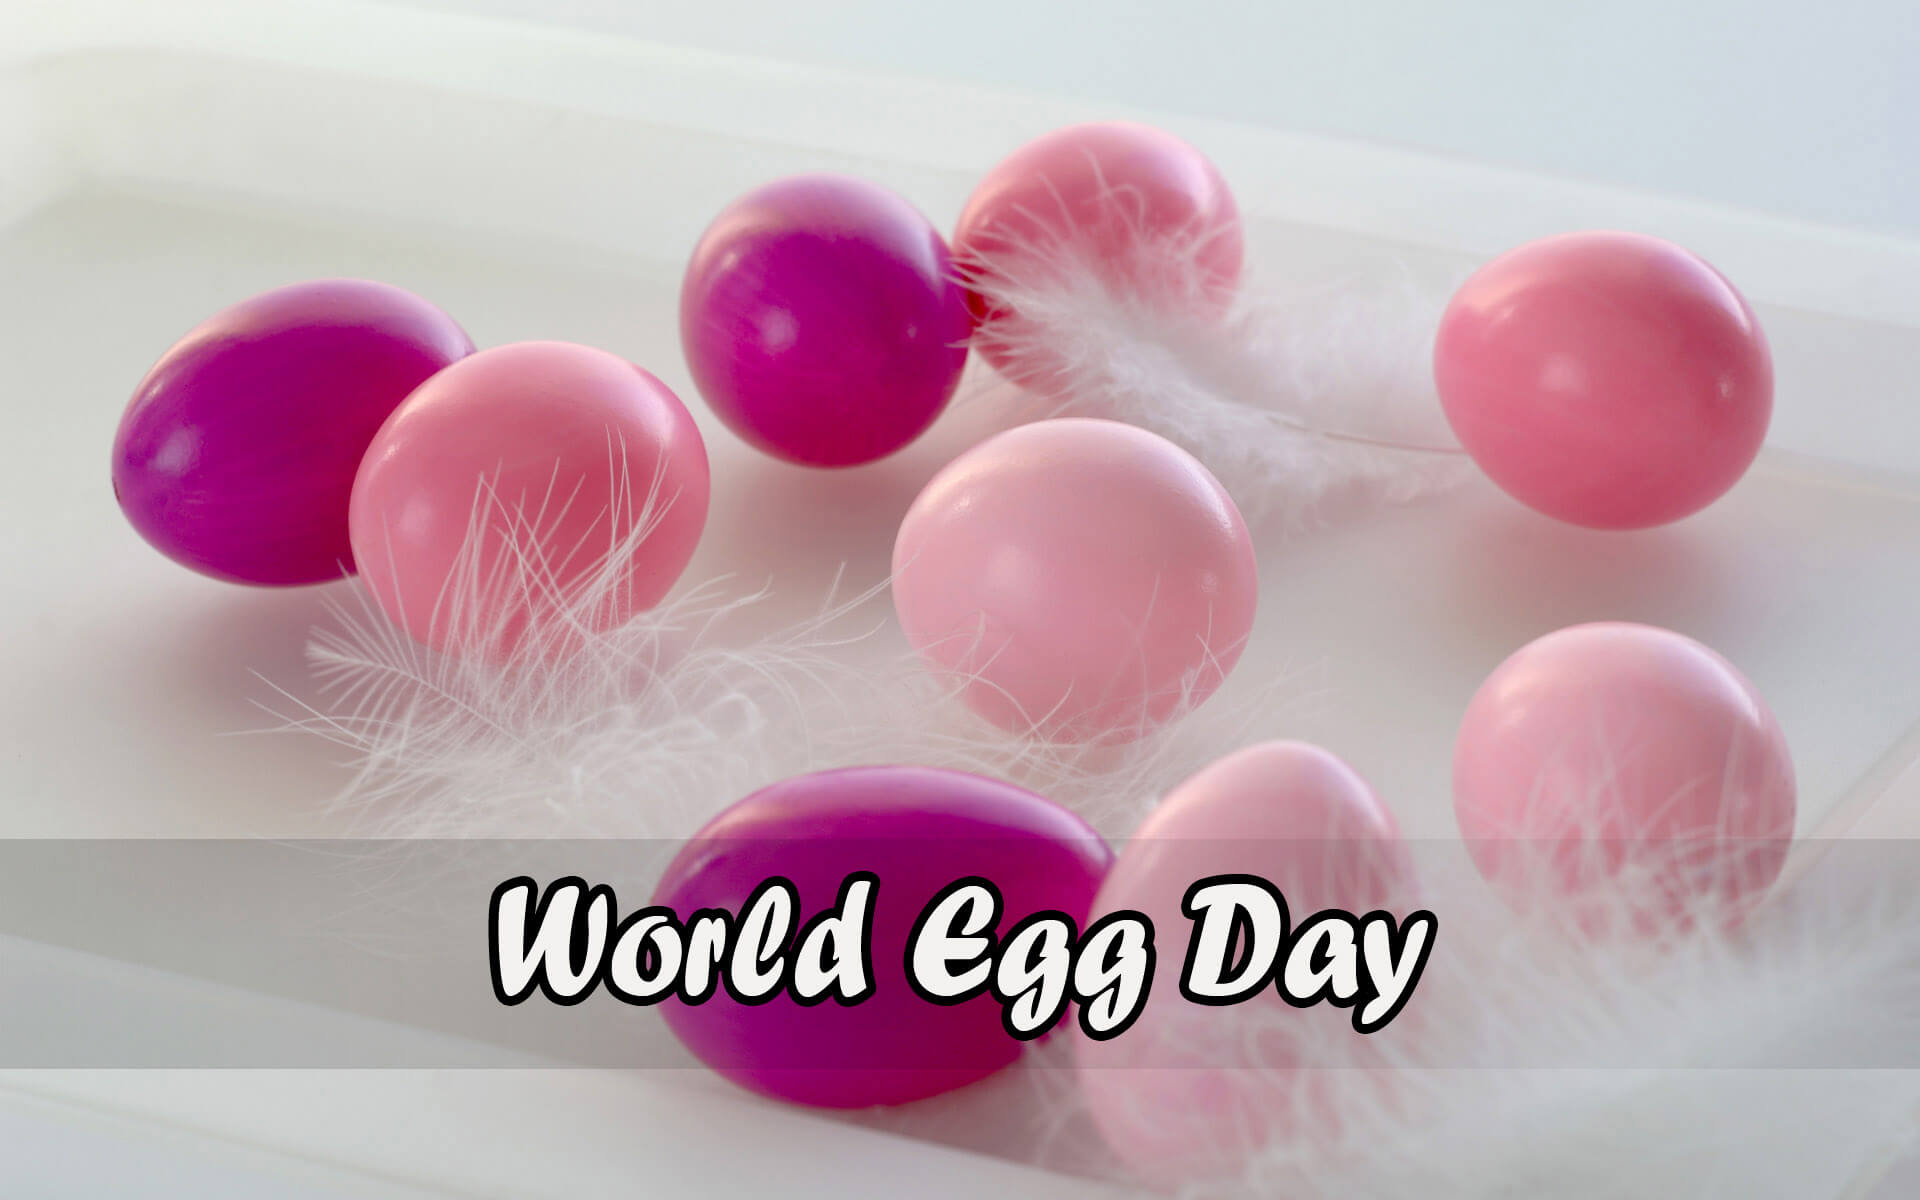 world egg day light dark pink eggs hd wallpaper